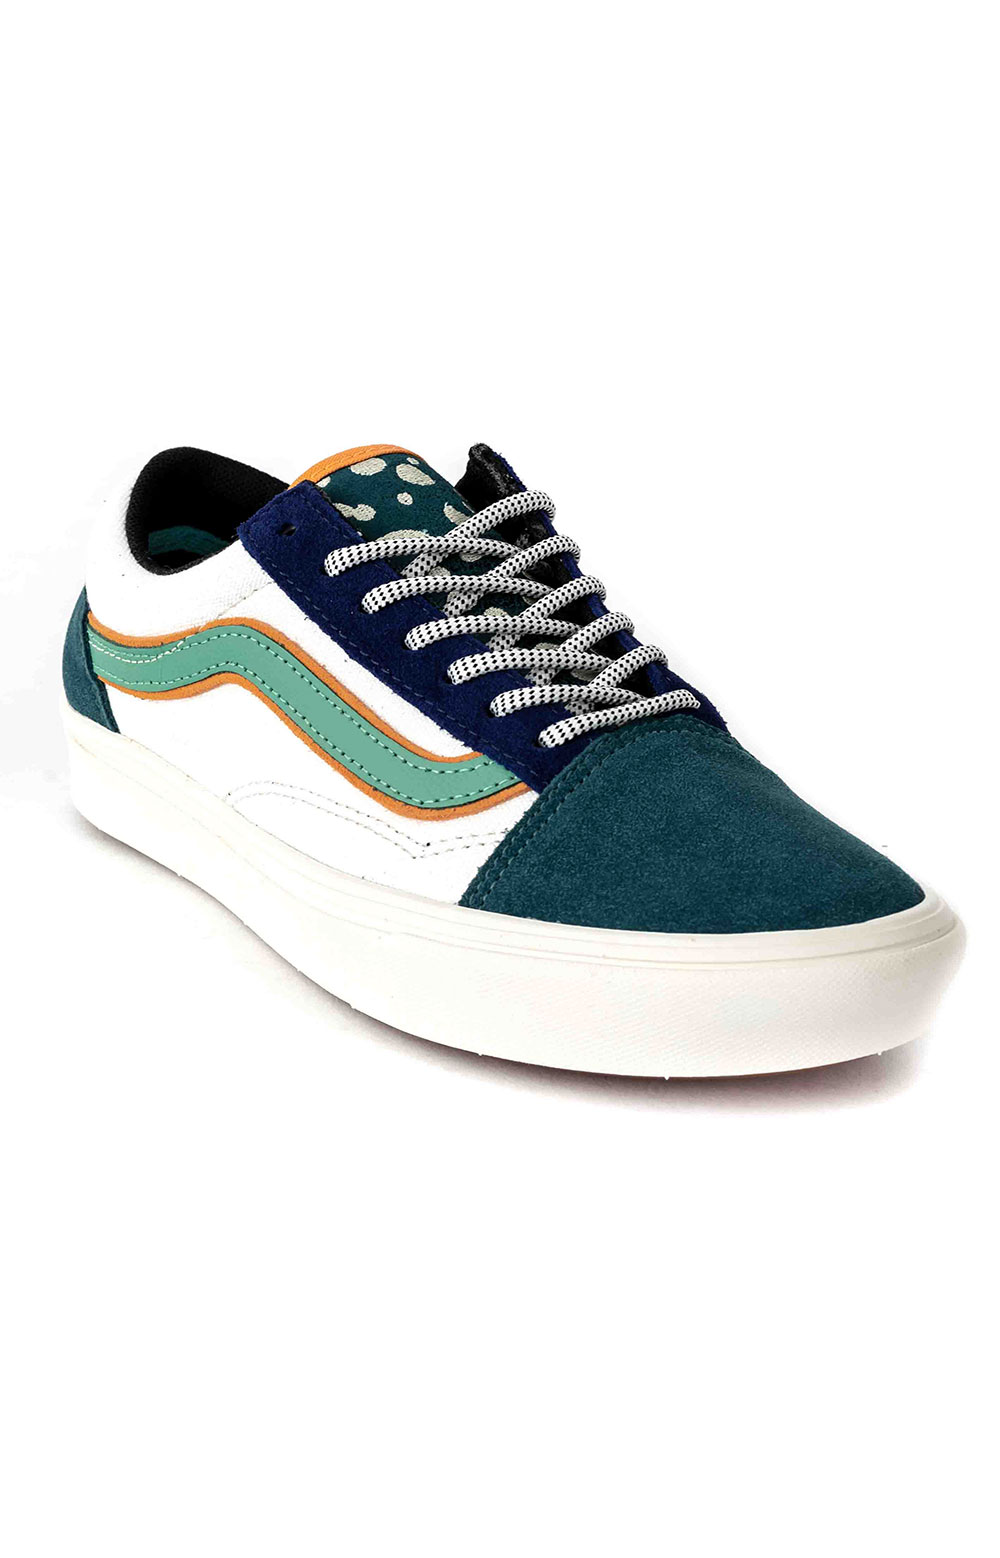 (WMAWWF) Bugs Old Skool ComfyCush Shoe - Multi 3